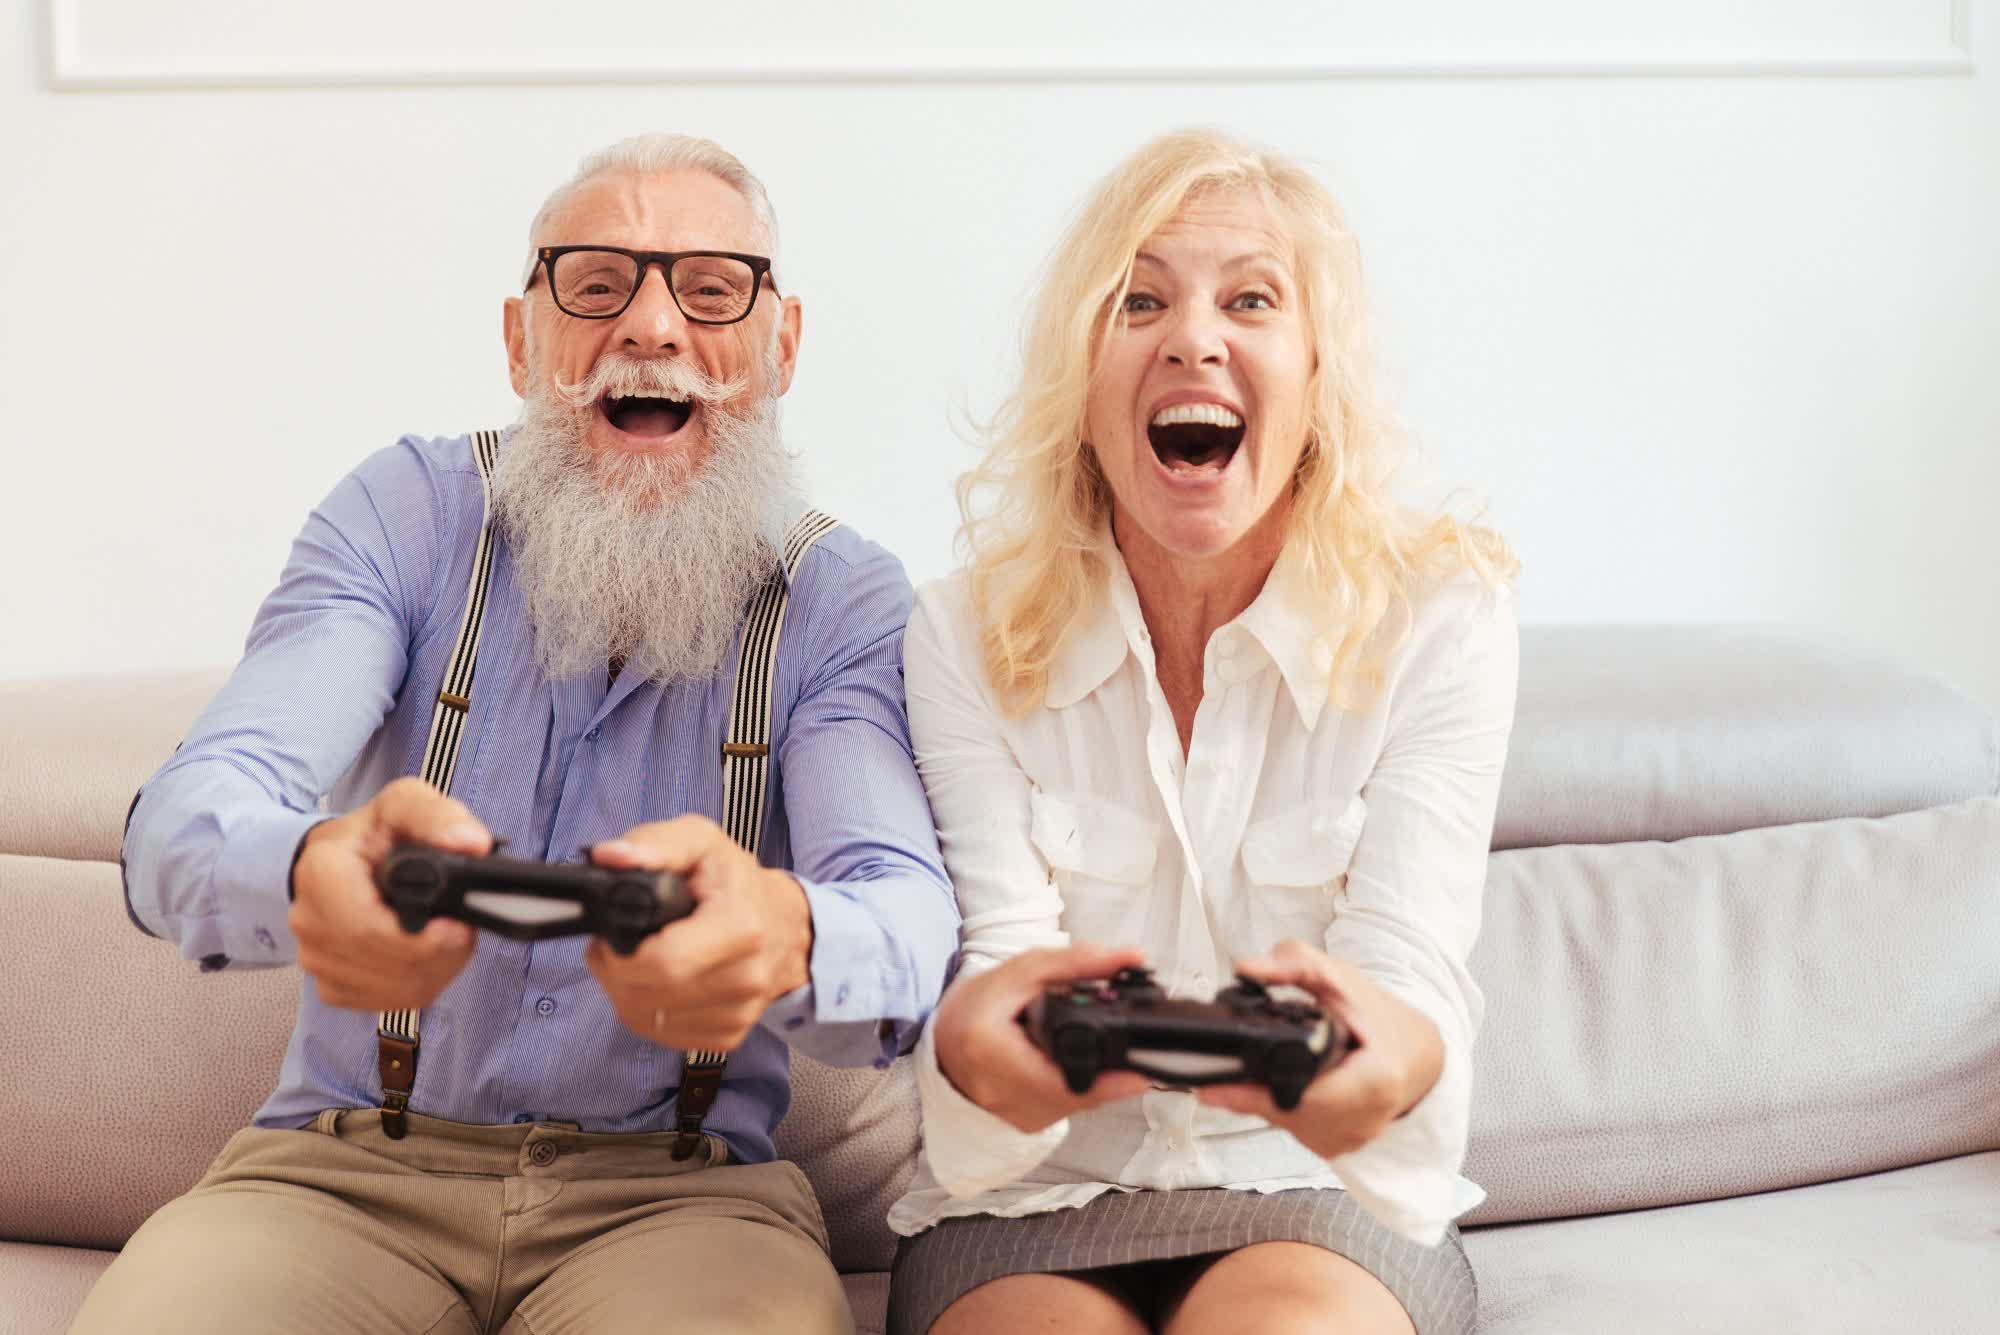 More Gen Xers and Baby Boomers are playing games